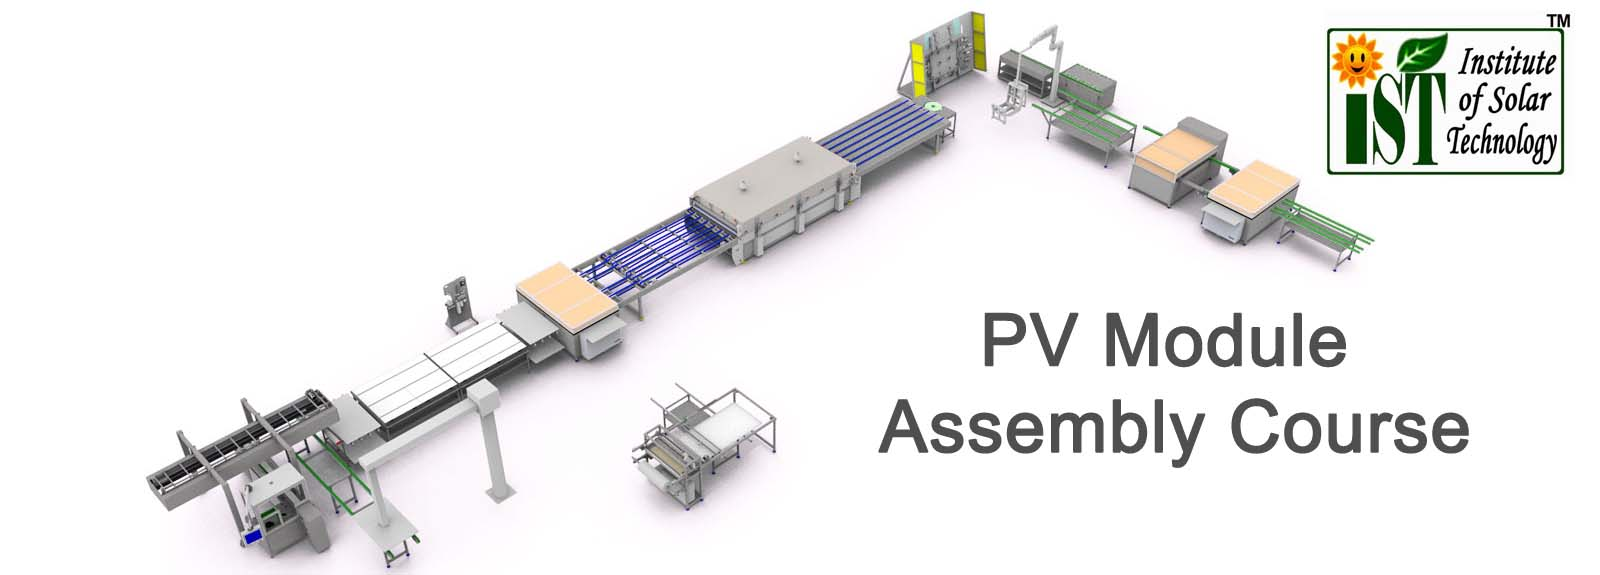 PV Module Assembly Course